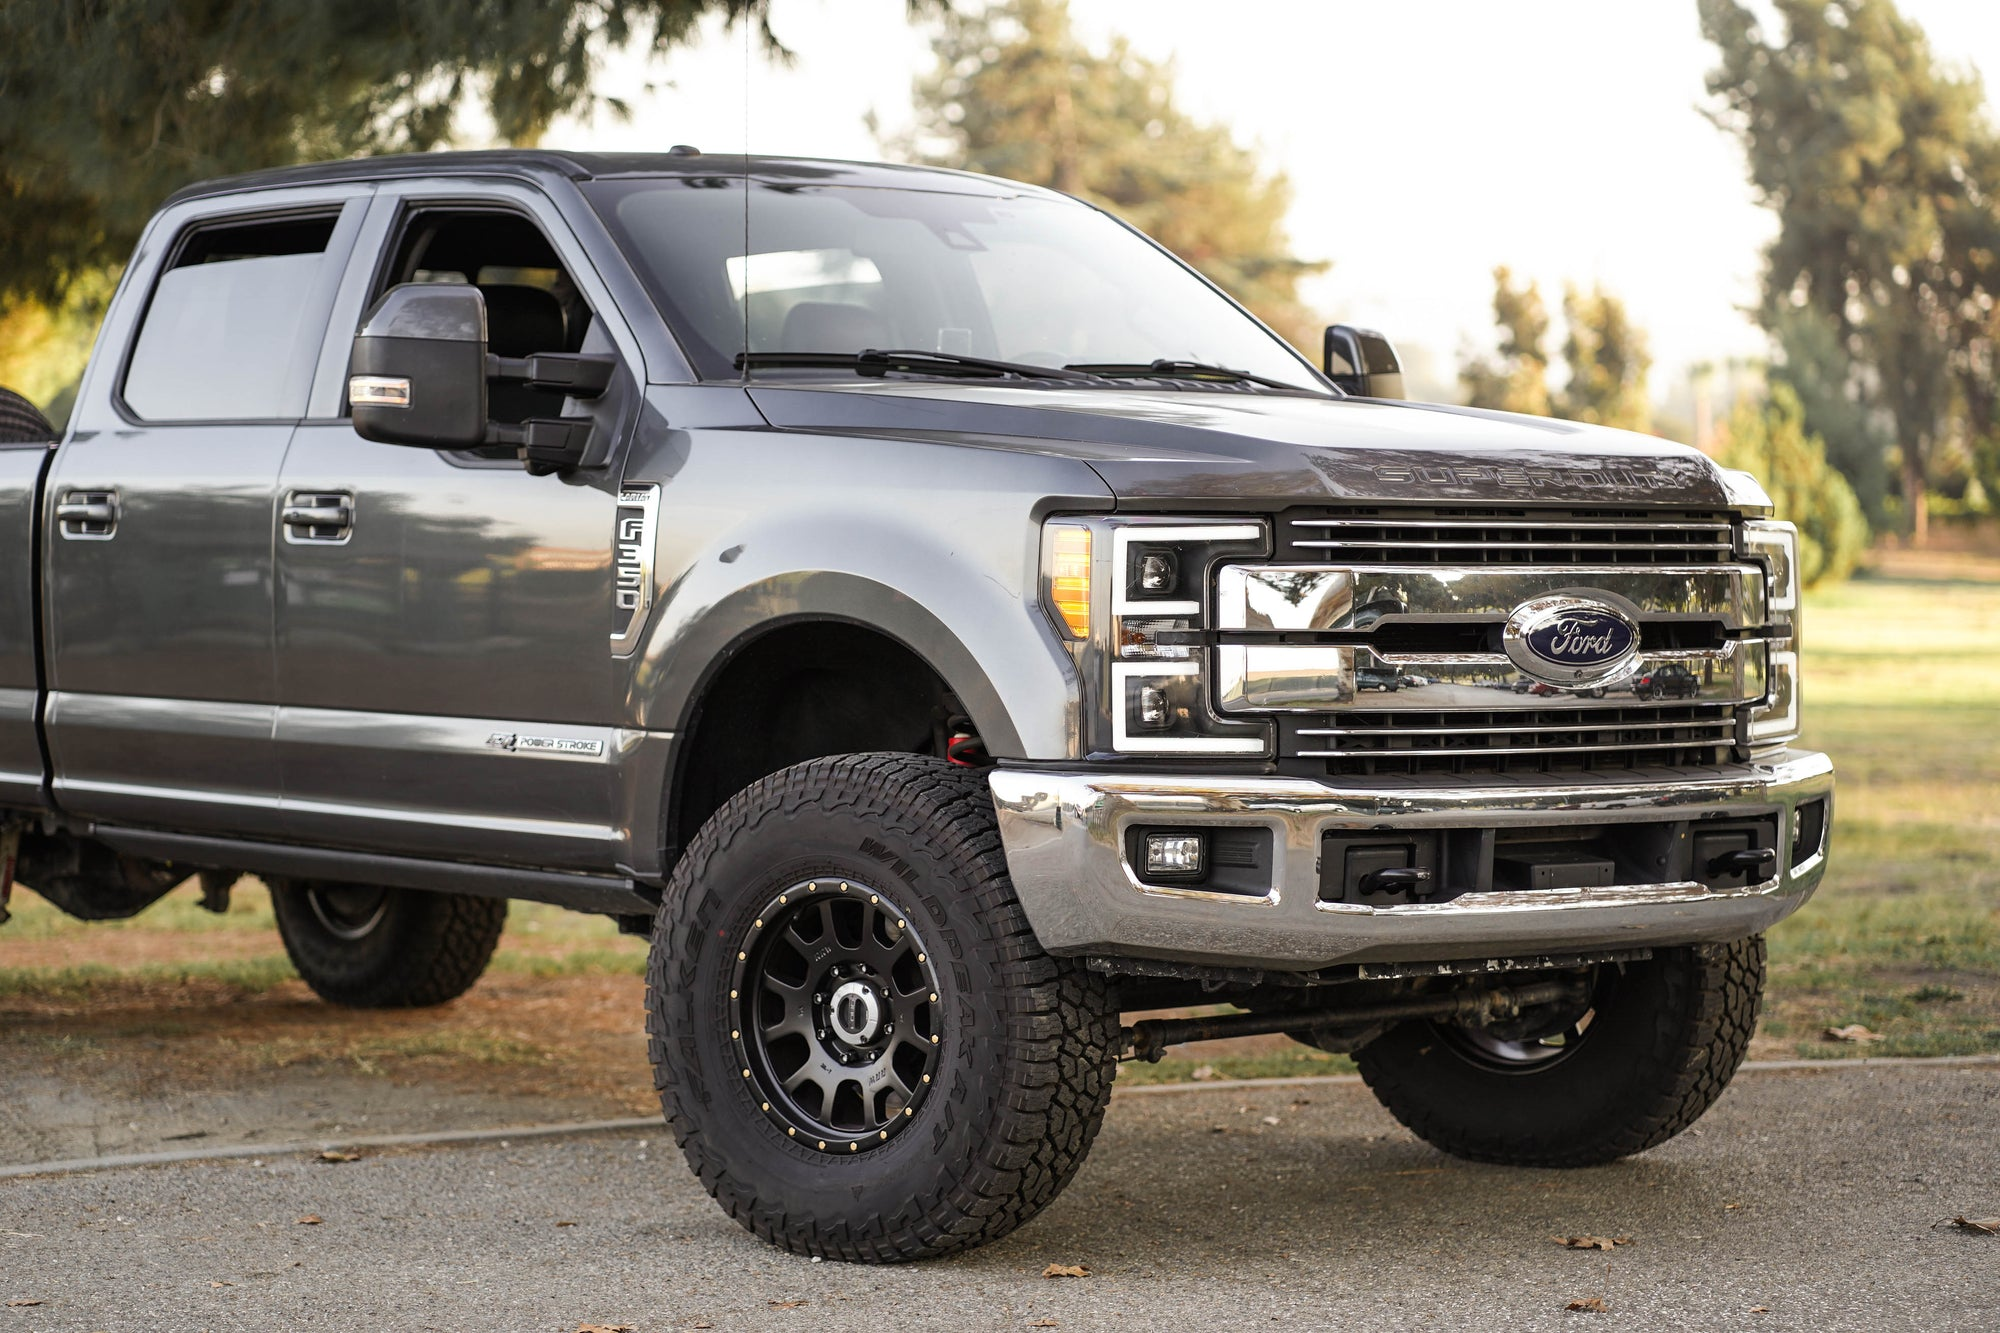 The best upgrade you can do to your Diesel work truck